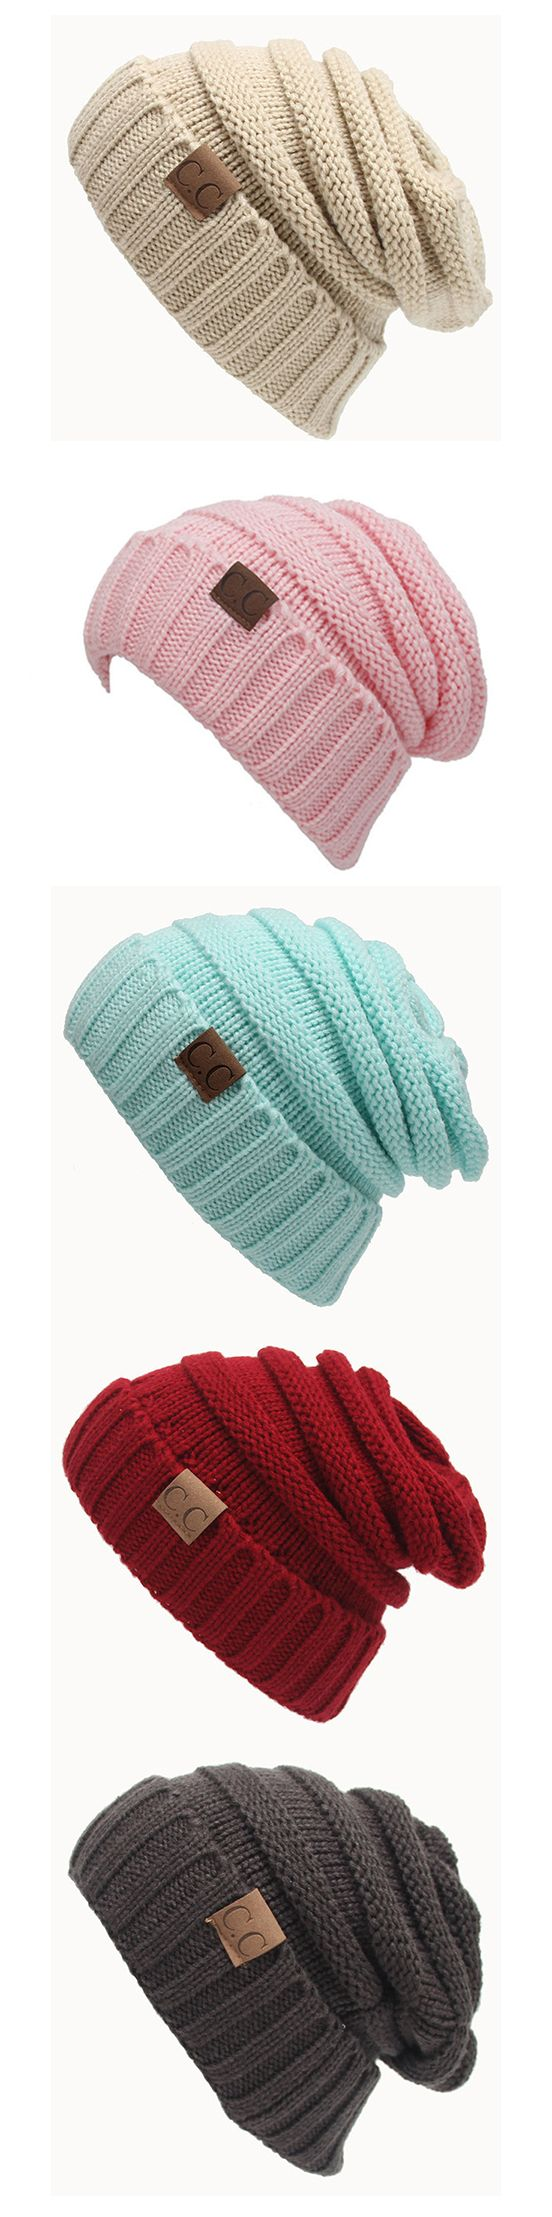 Outdoor Knitting Hats: Women&Men